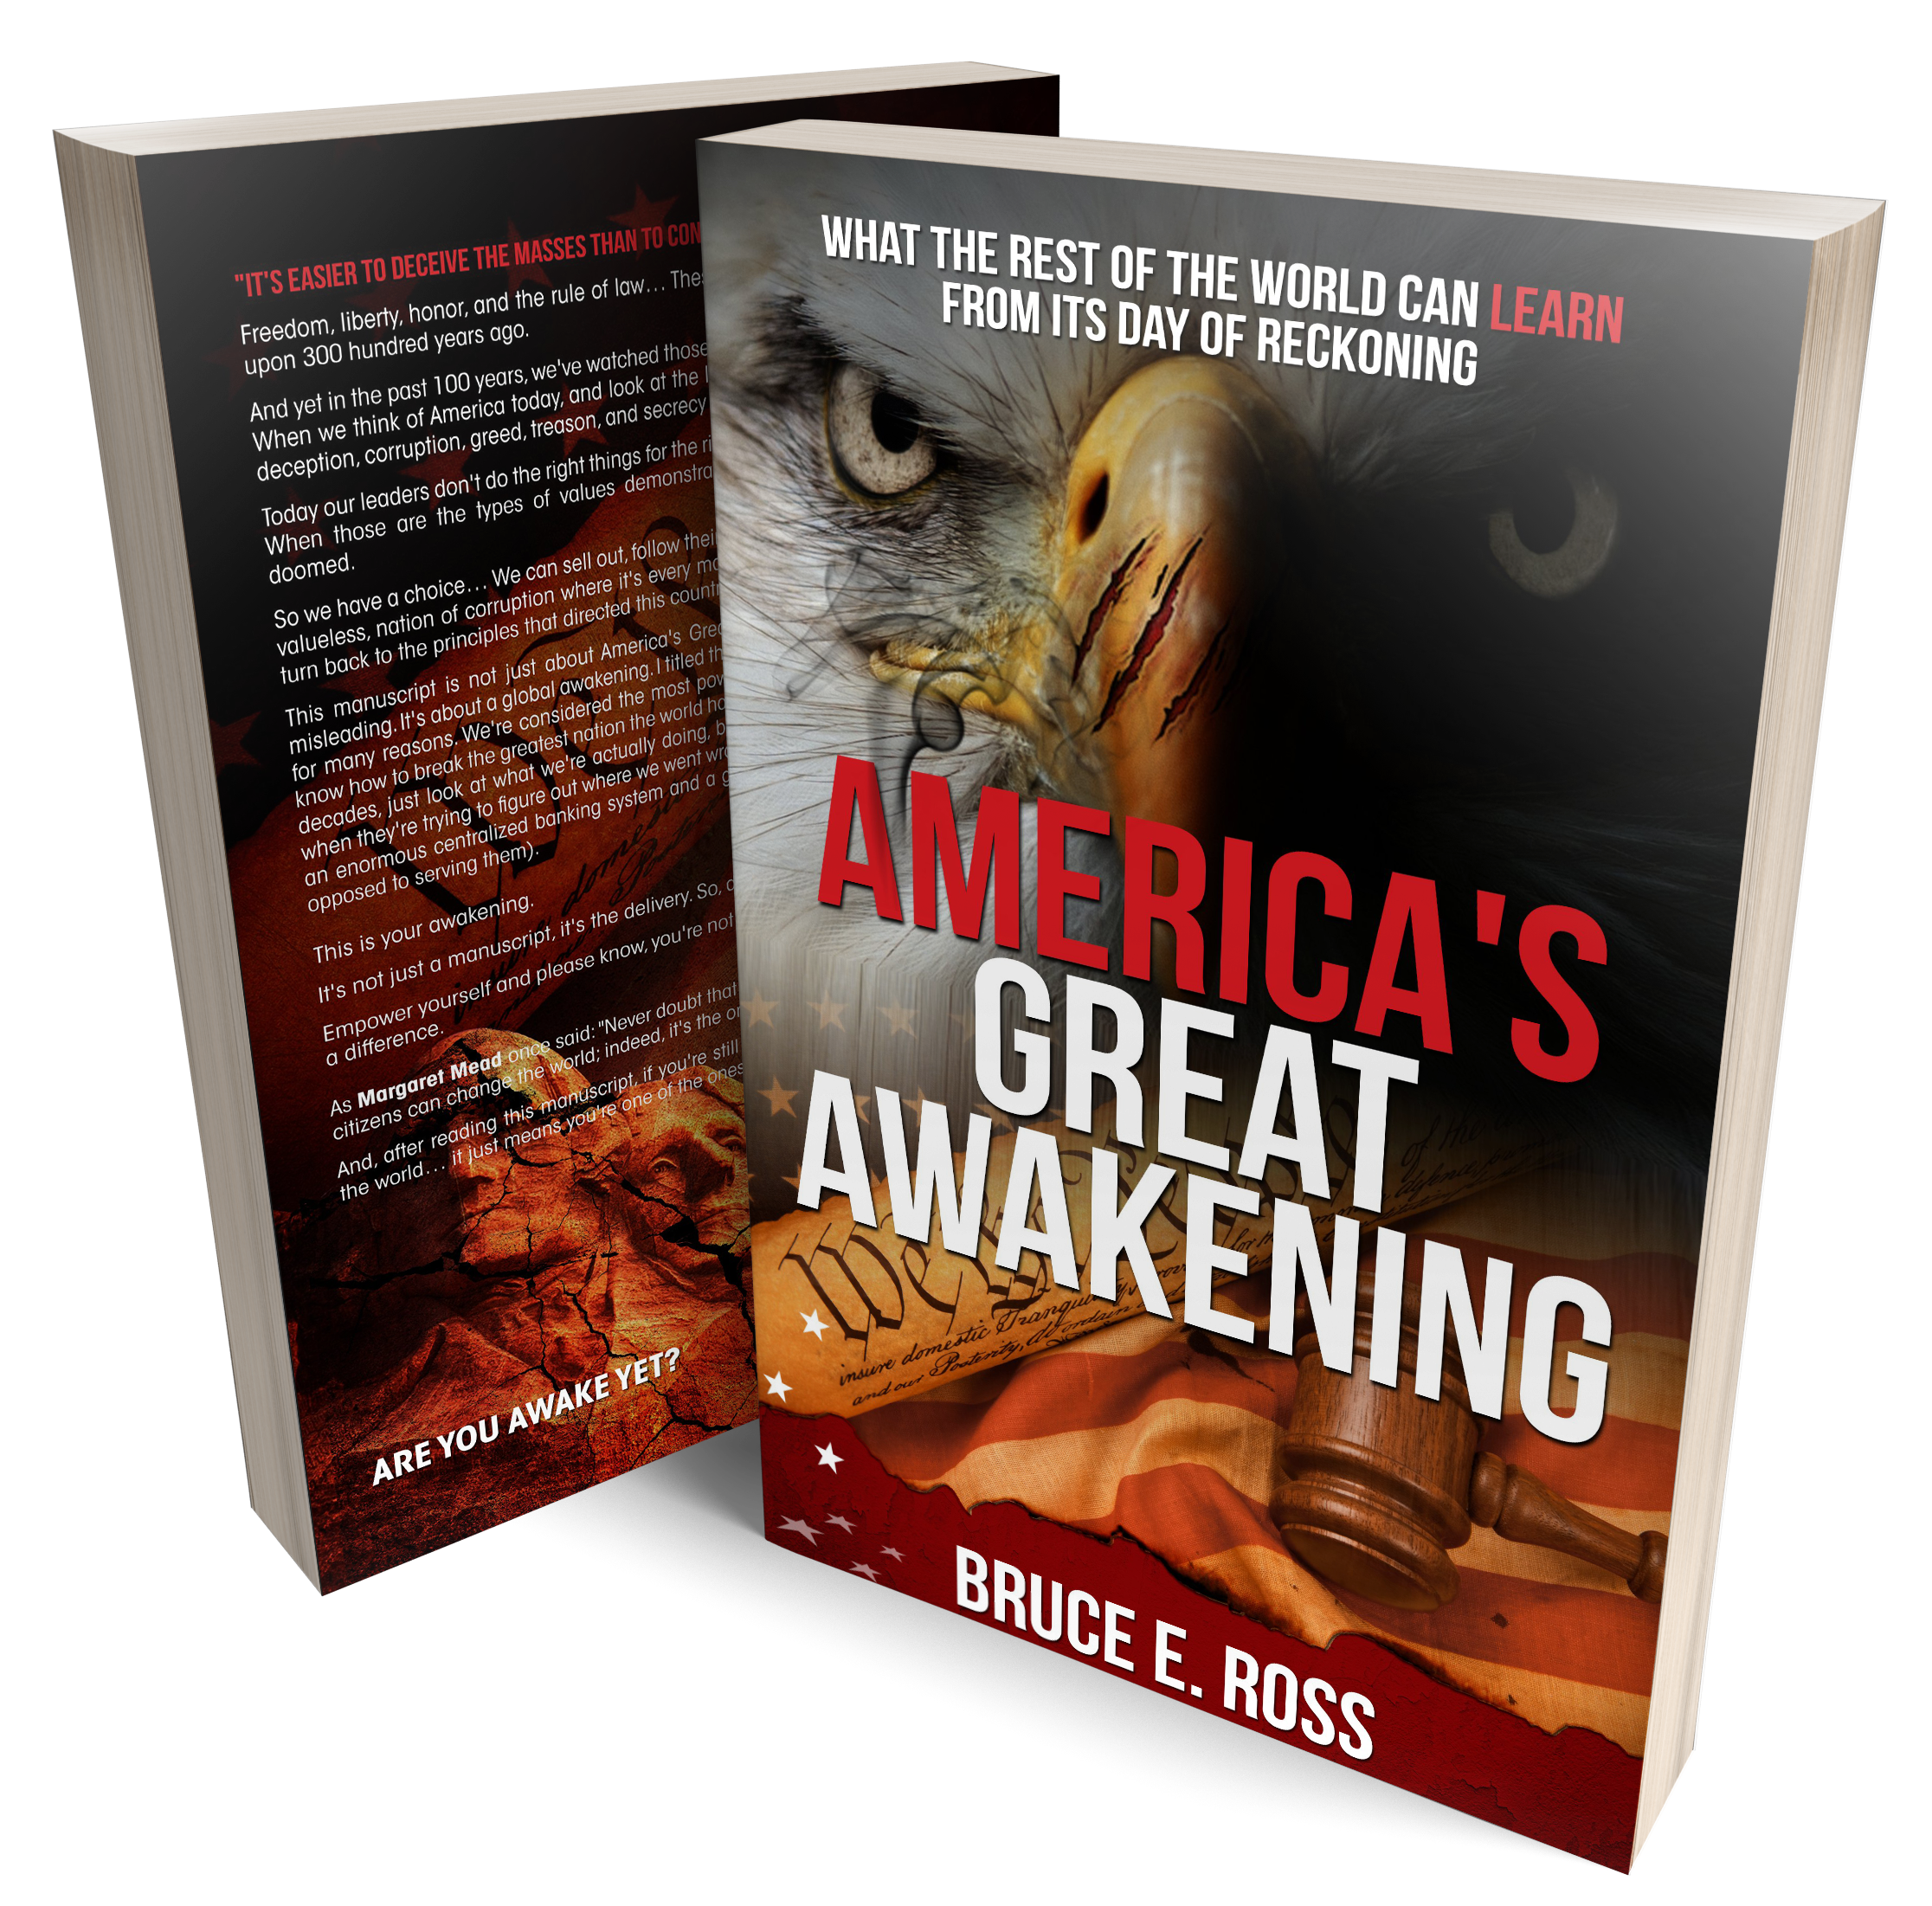 America's Great Awakening